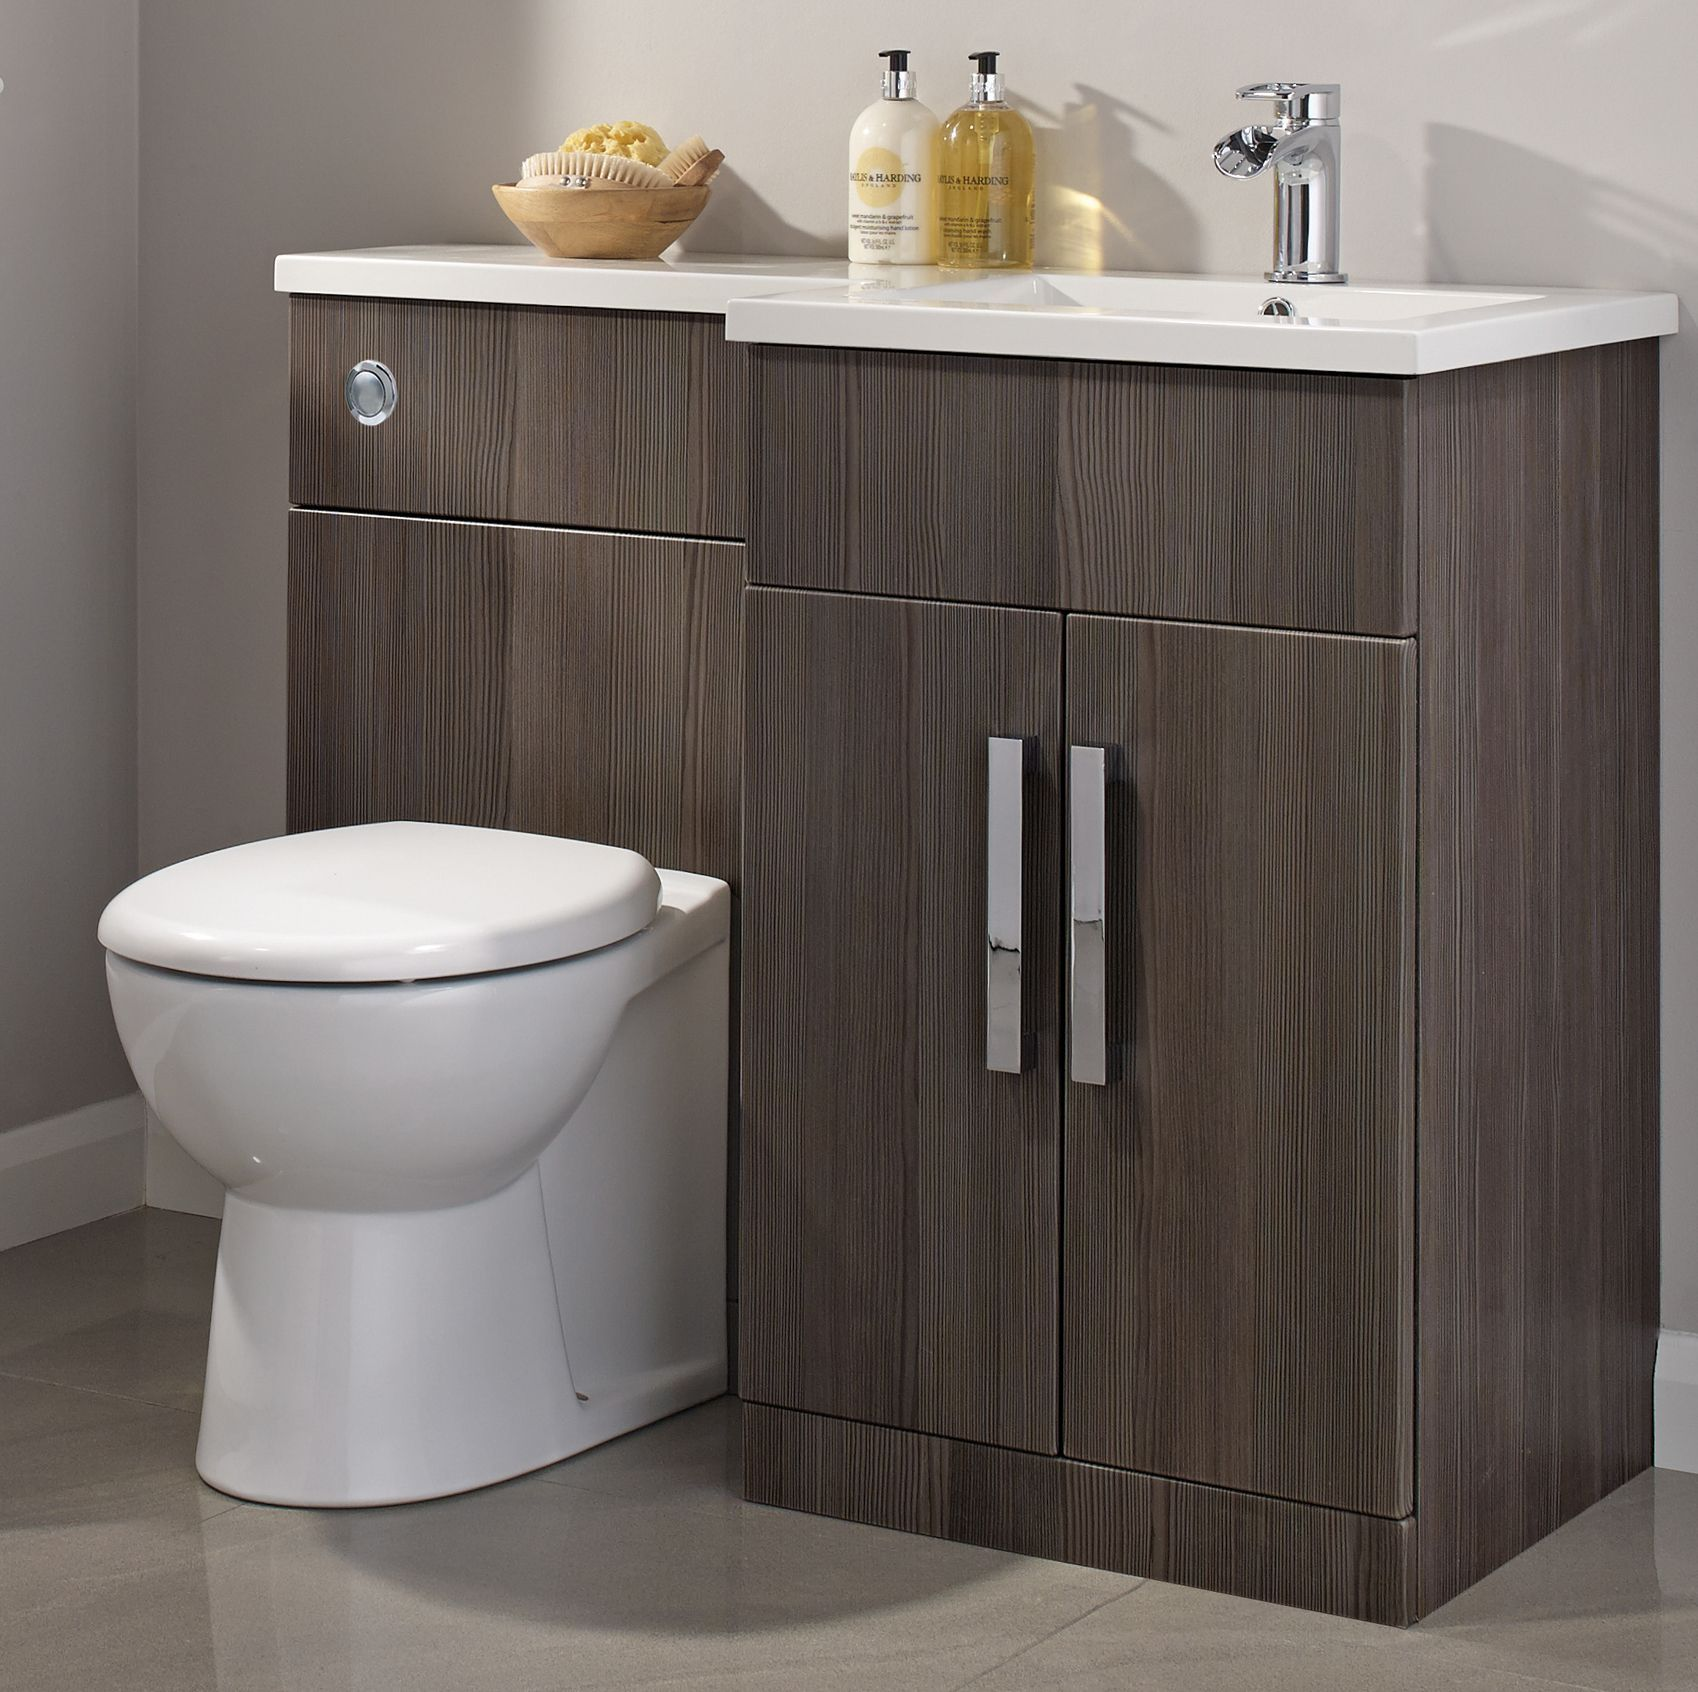 Cooke & Lewis Ardesio Bodega Grey Rh Vanity & Toilet Pack Bathroom  Furniturebathroom